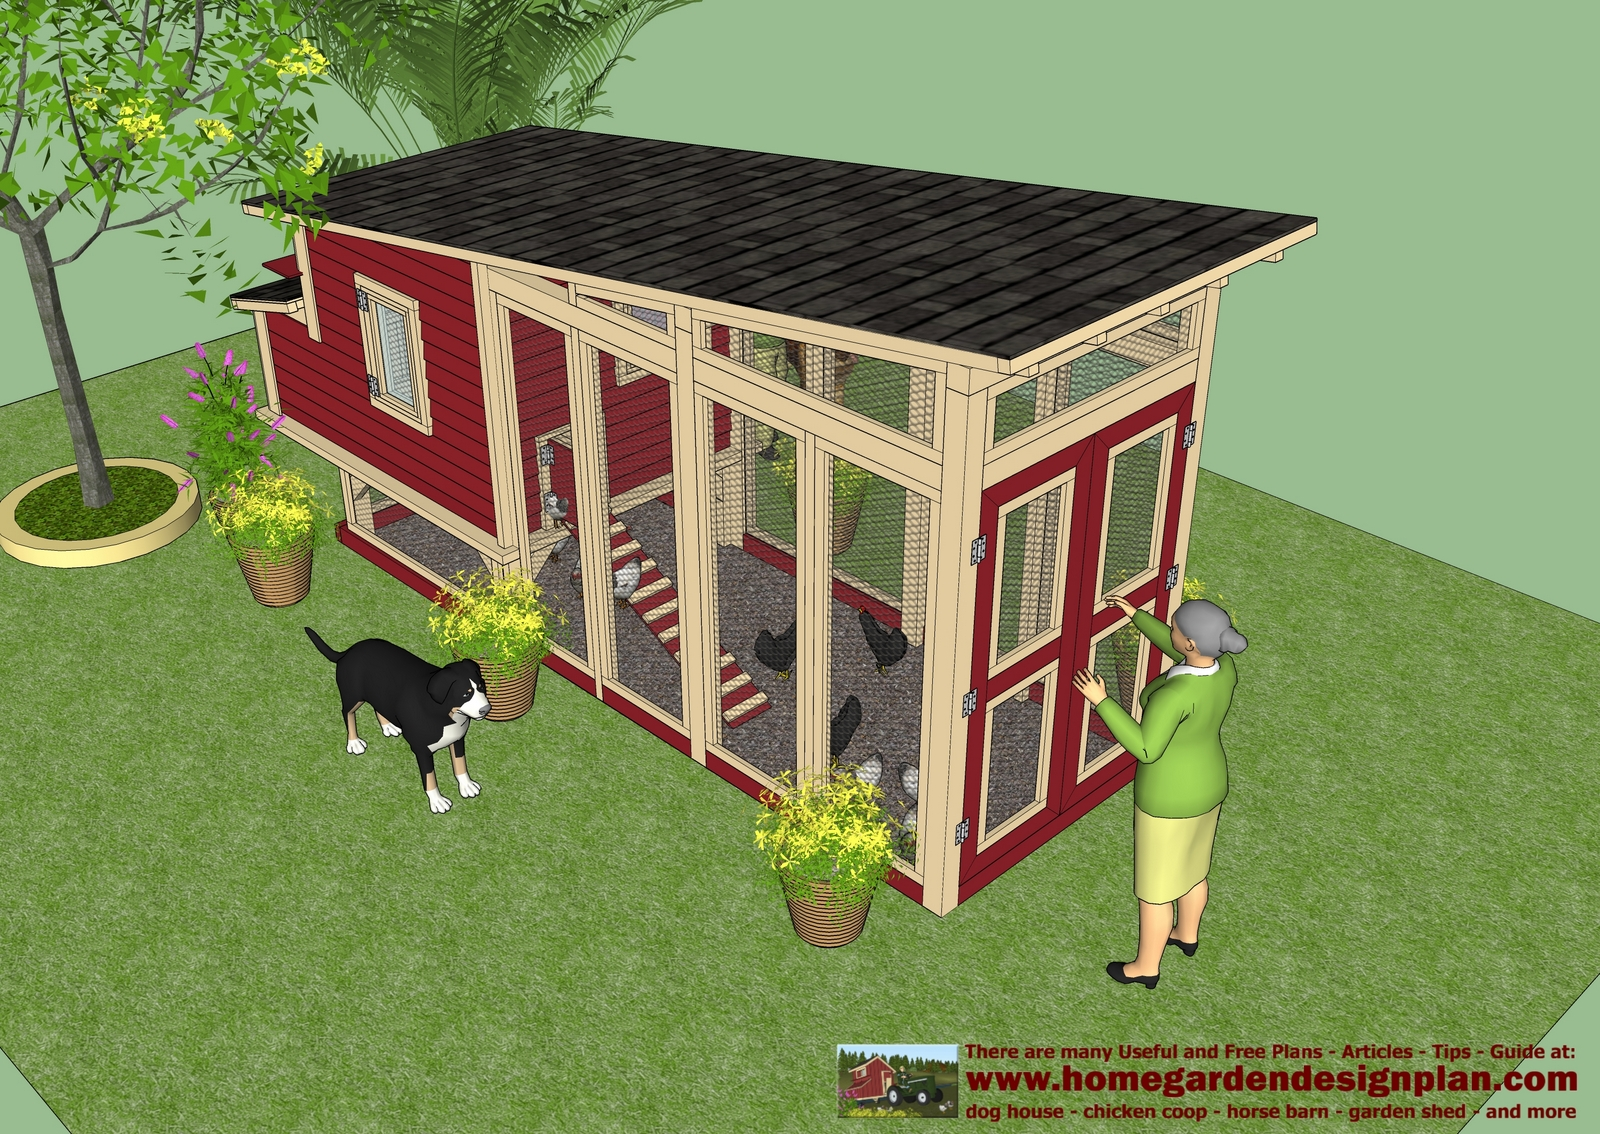 For chick coop diy chicken coop plans free pdf for Chicken coop plans free pdf